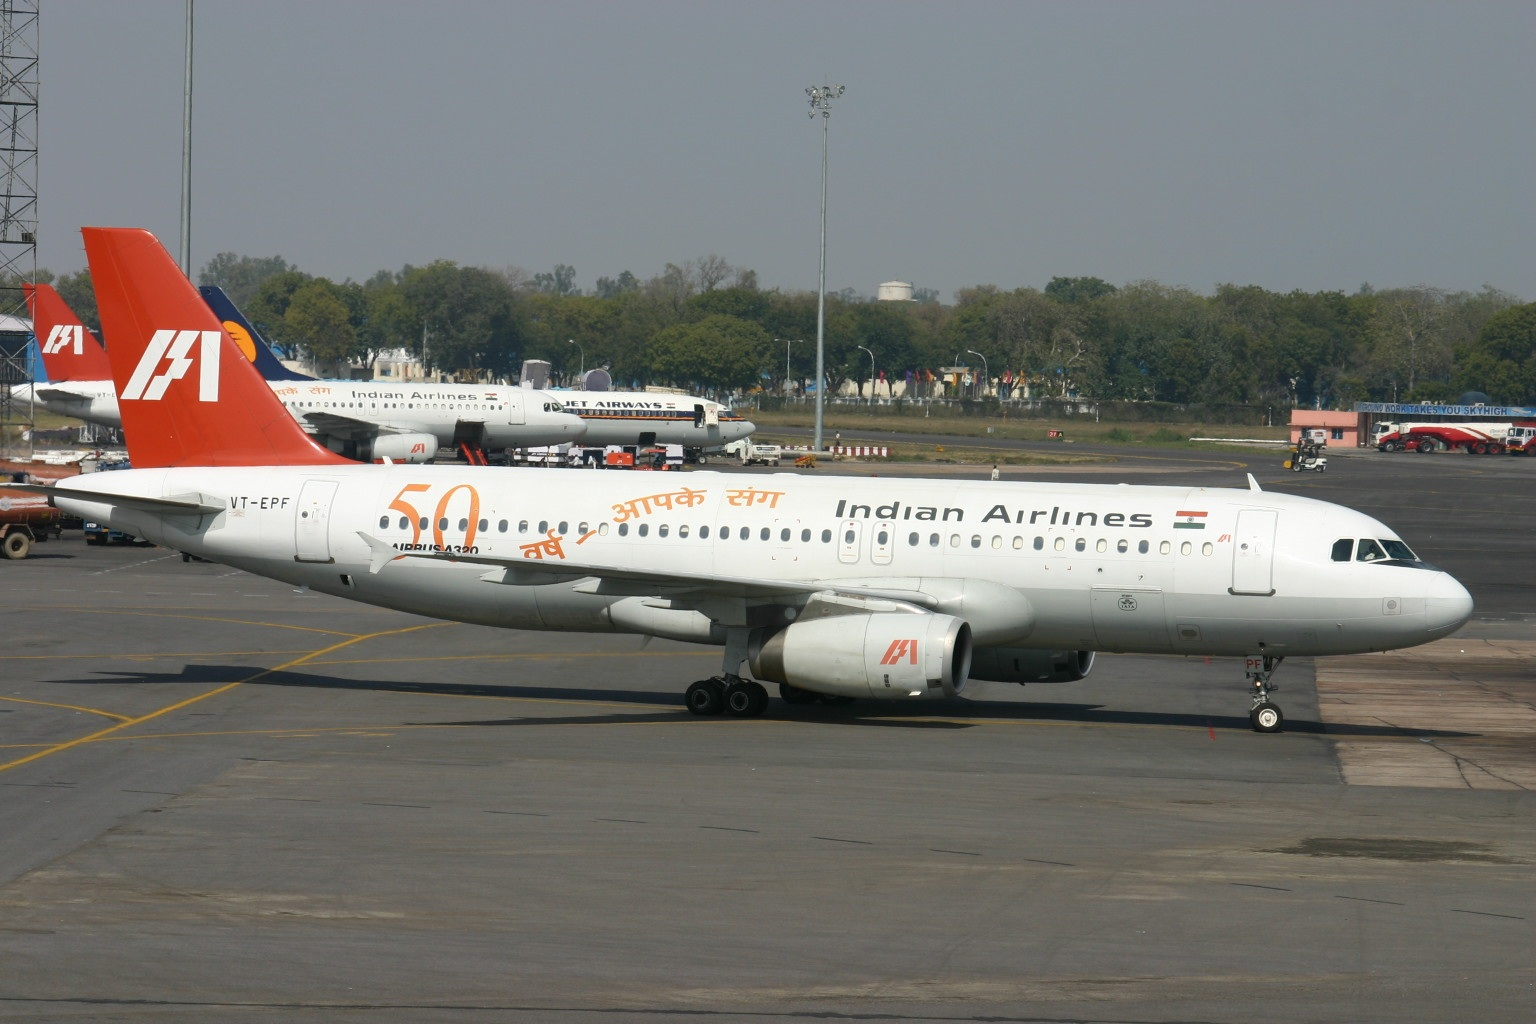 Indian airlines allowed to carry 85% of passenger load capacity